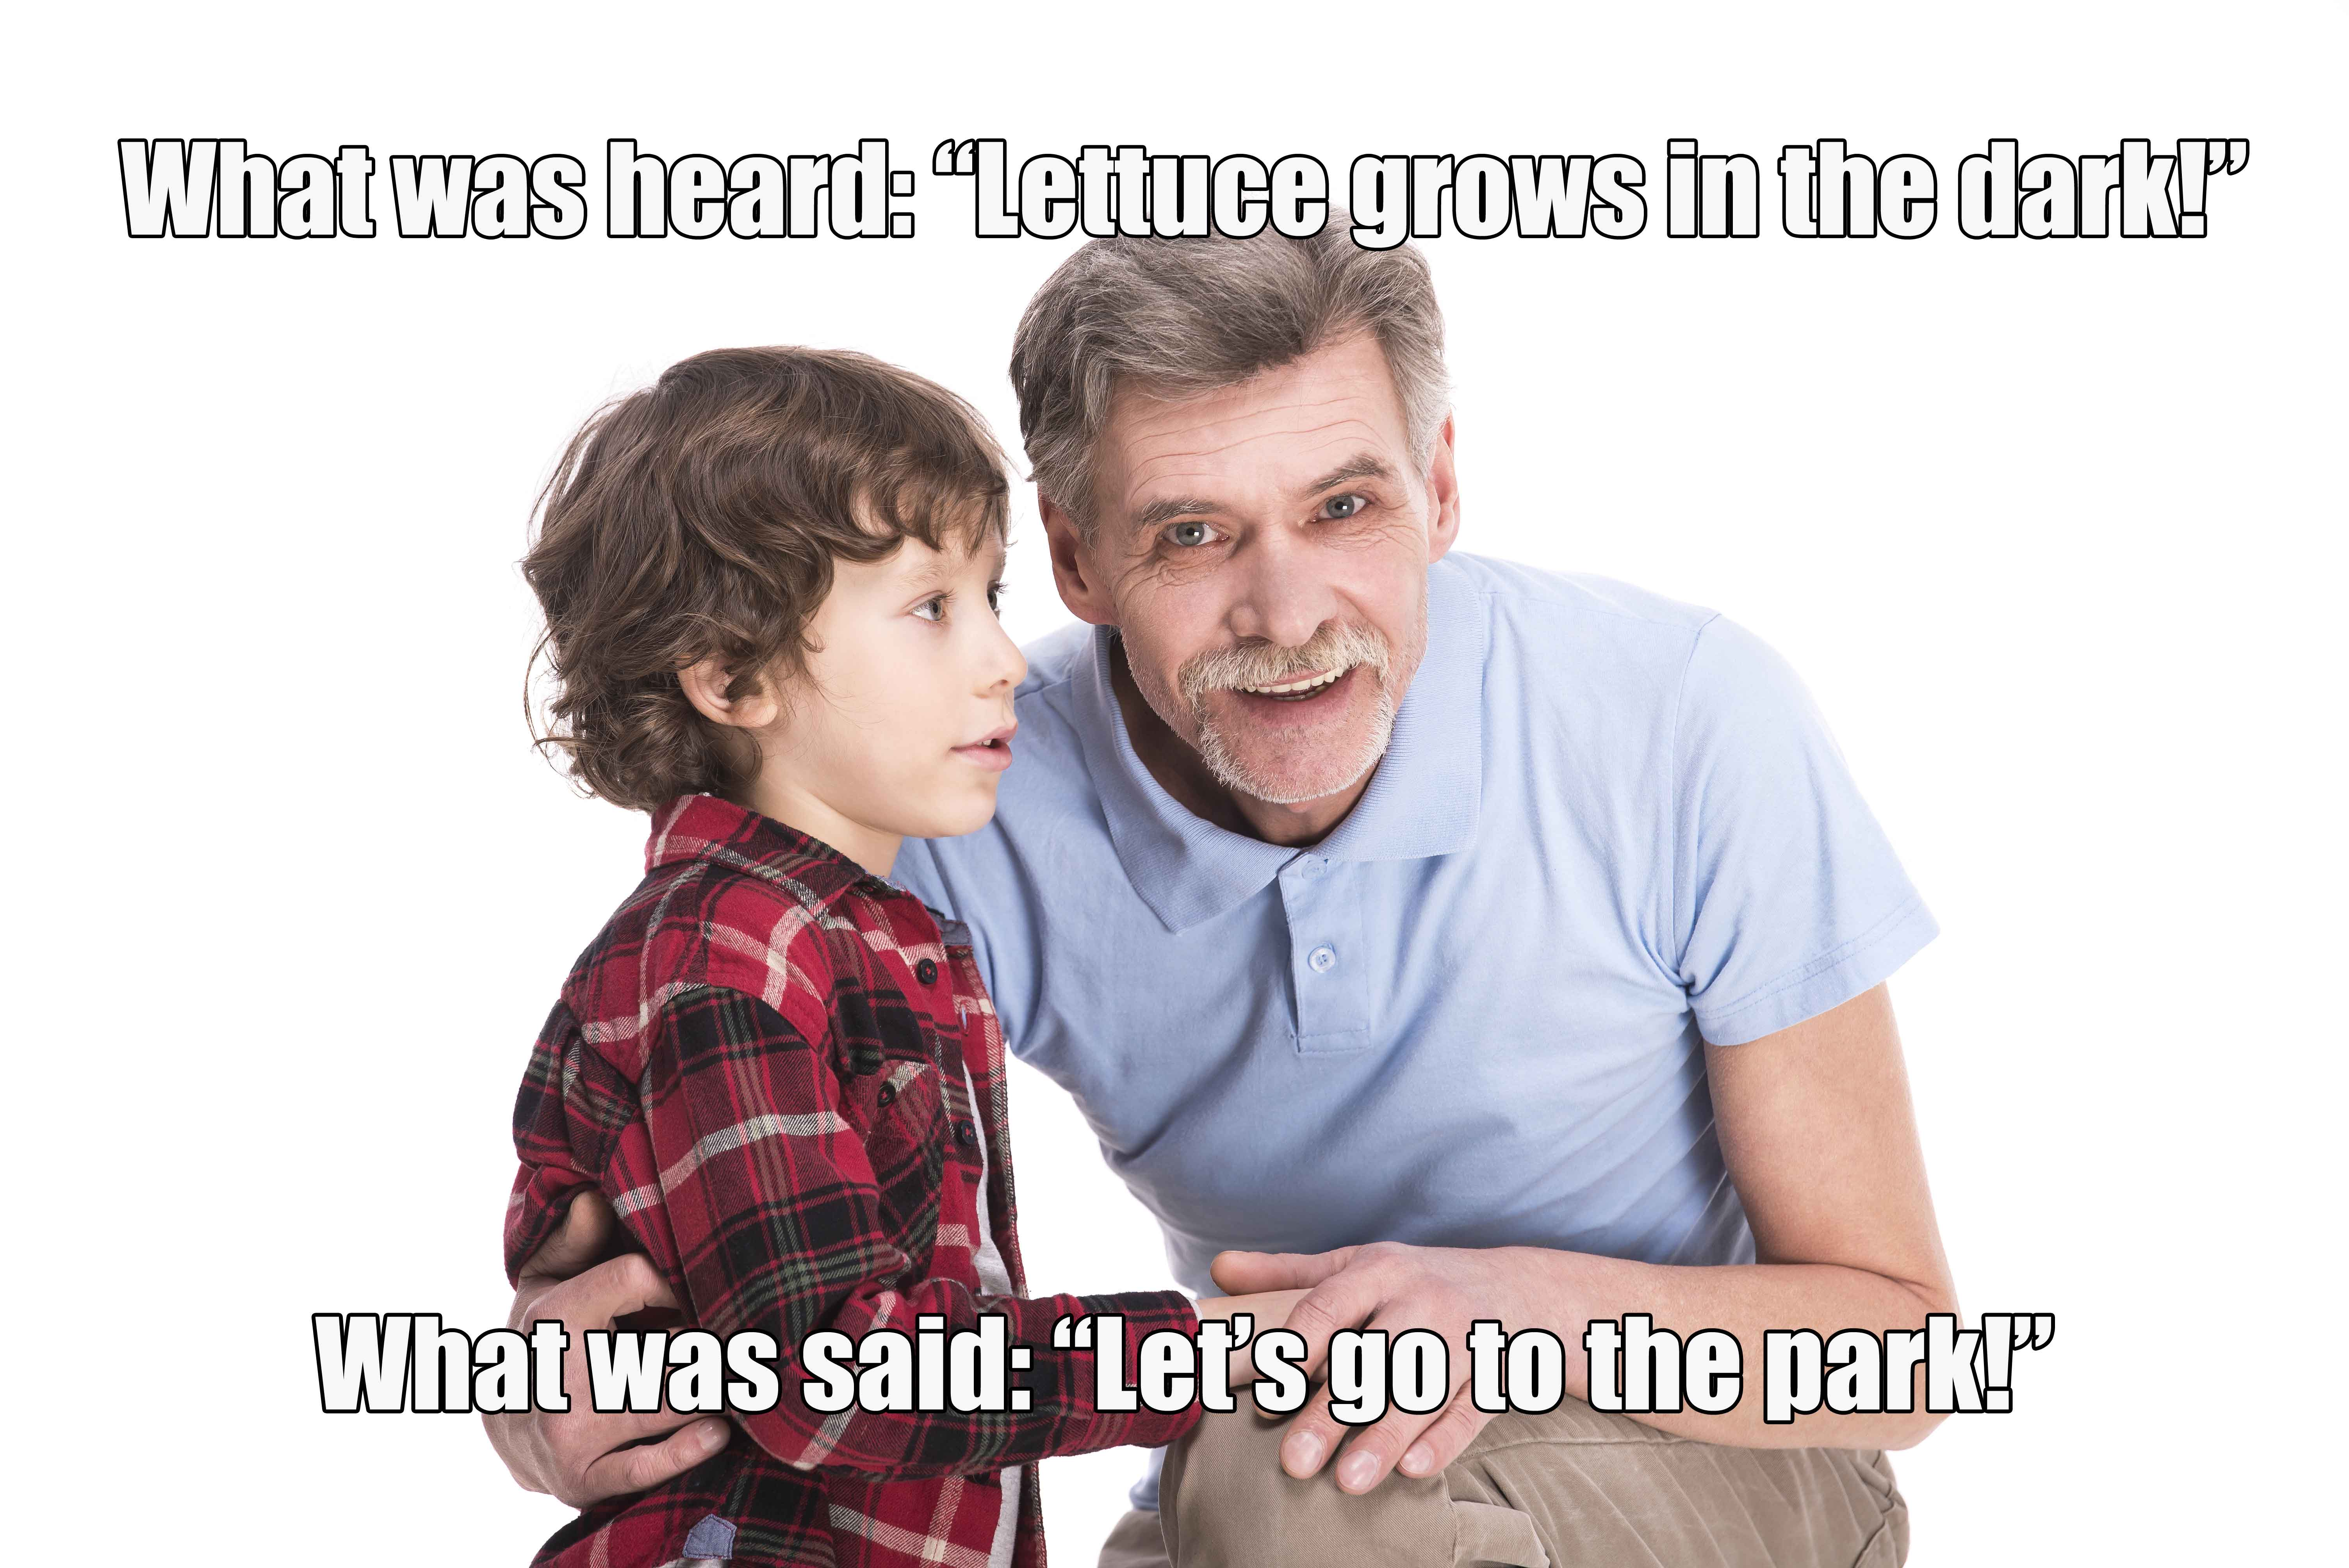 misunderstanding due to hearing loss in family